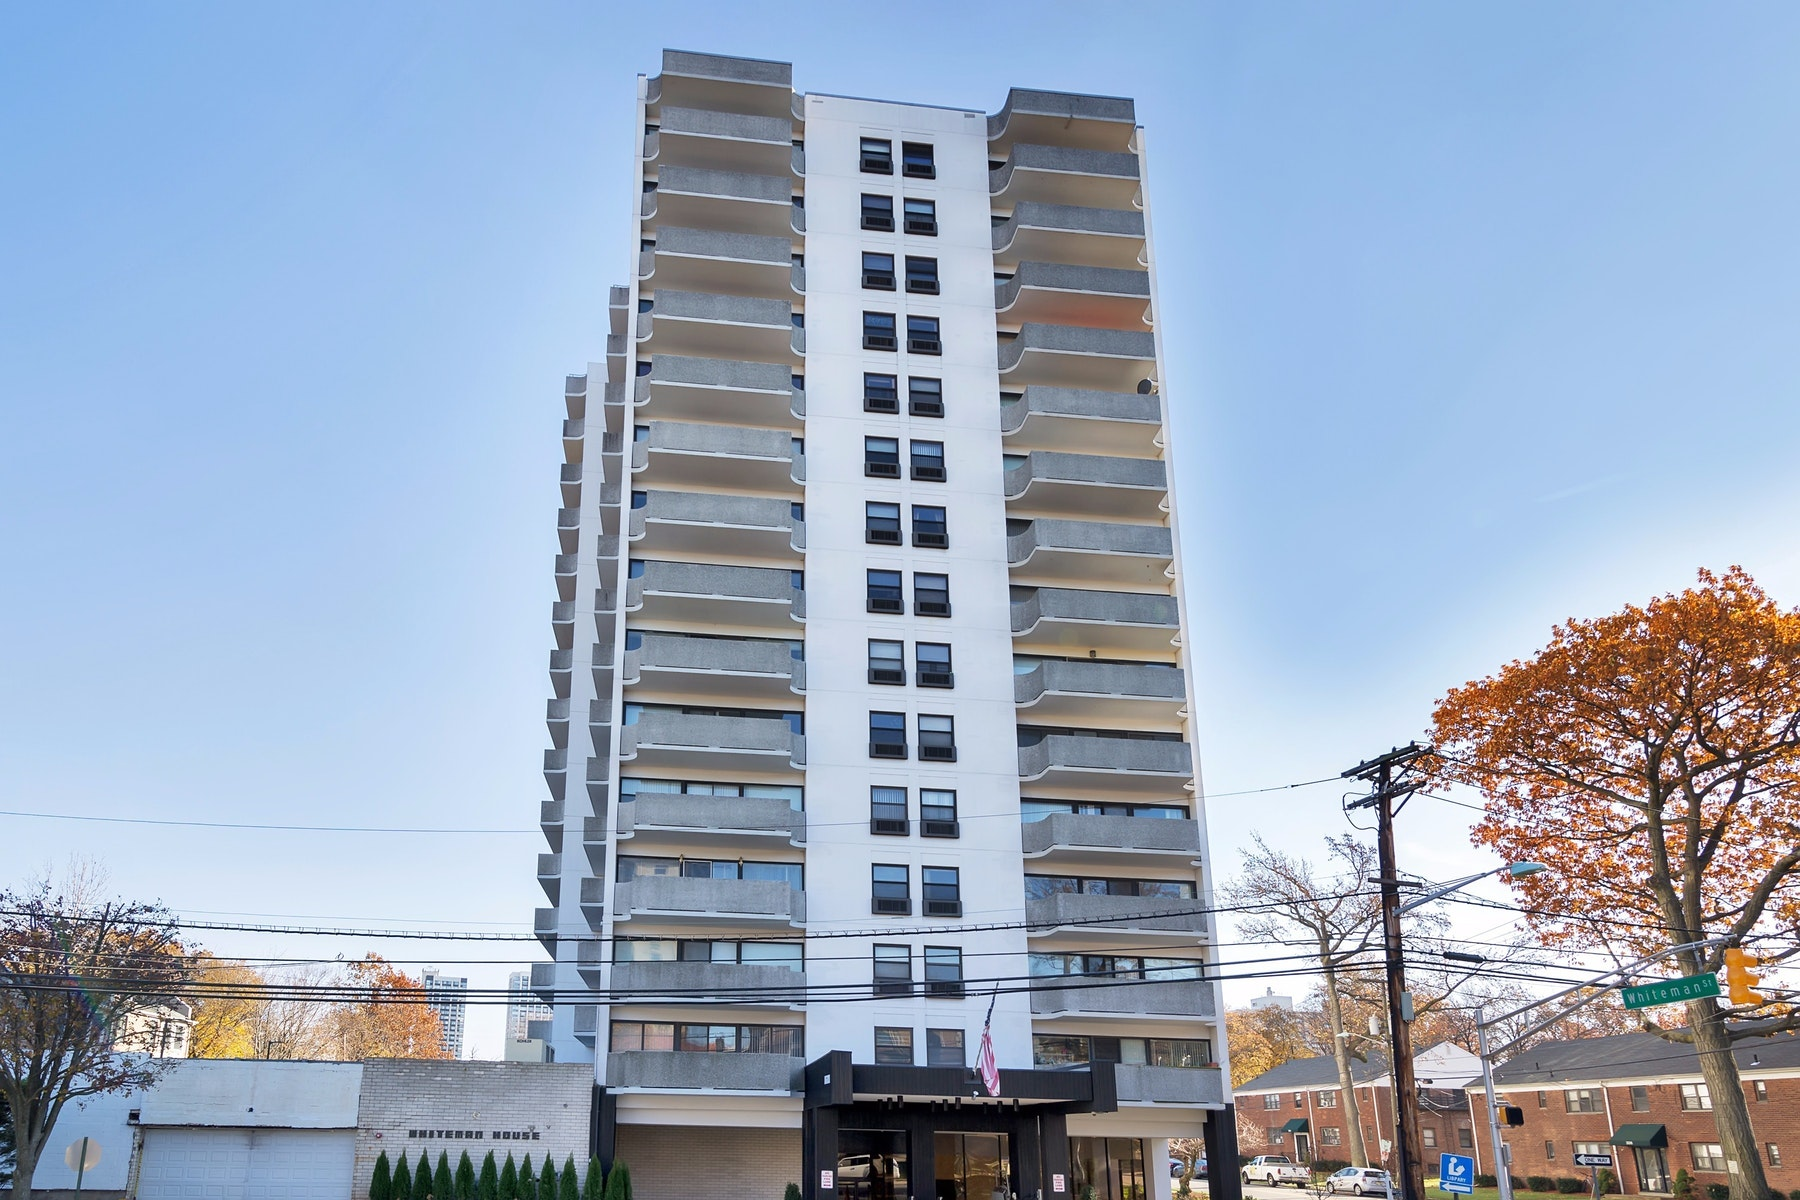 Condominium for Sale at Whiteman House 1600 Center Avenue PHW, Fort Lee, New Jersey 07024 United States